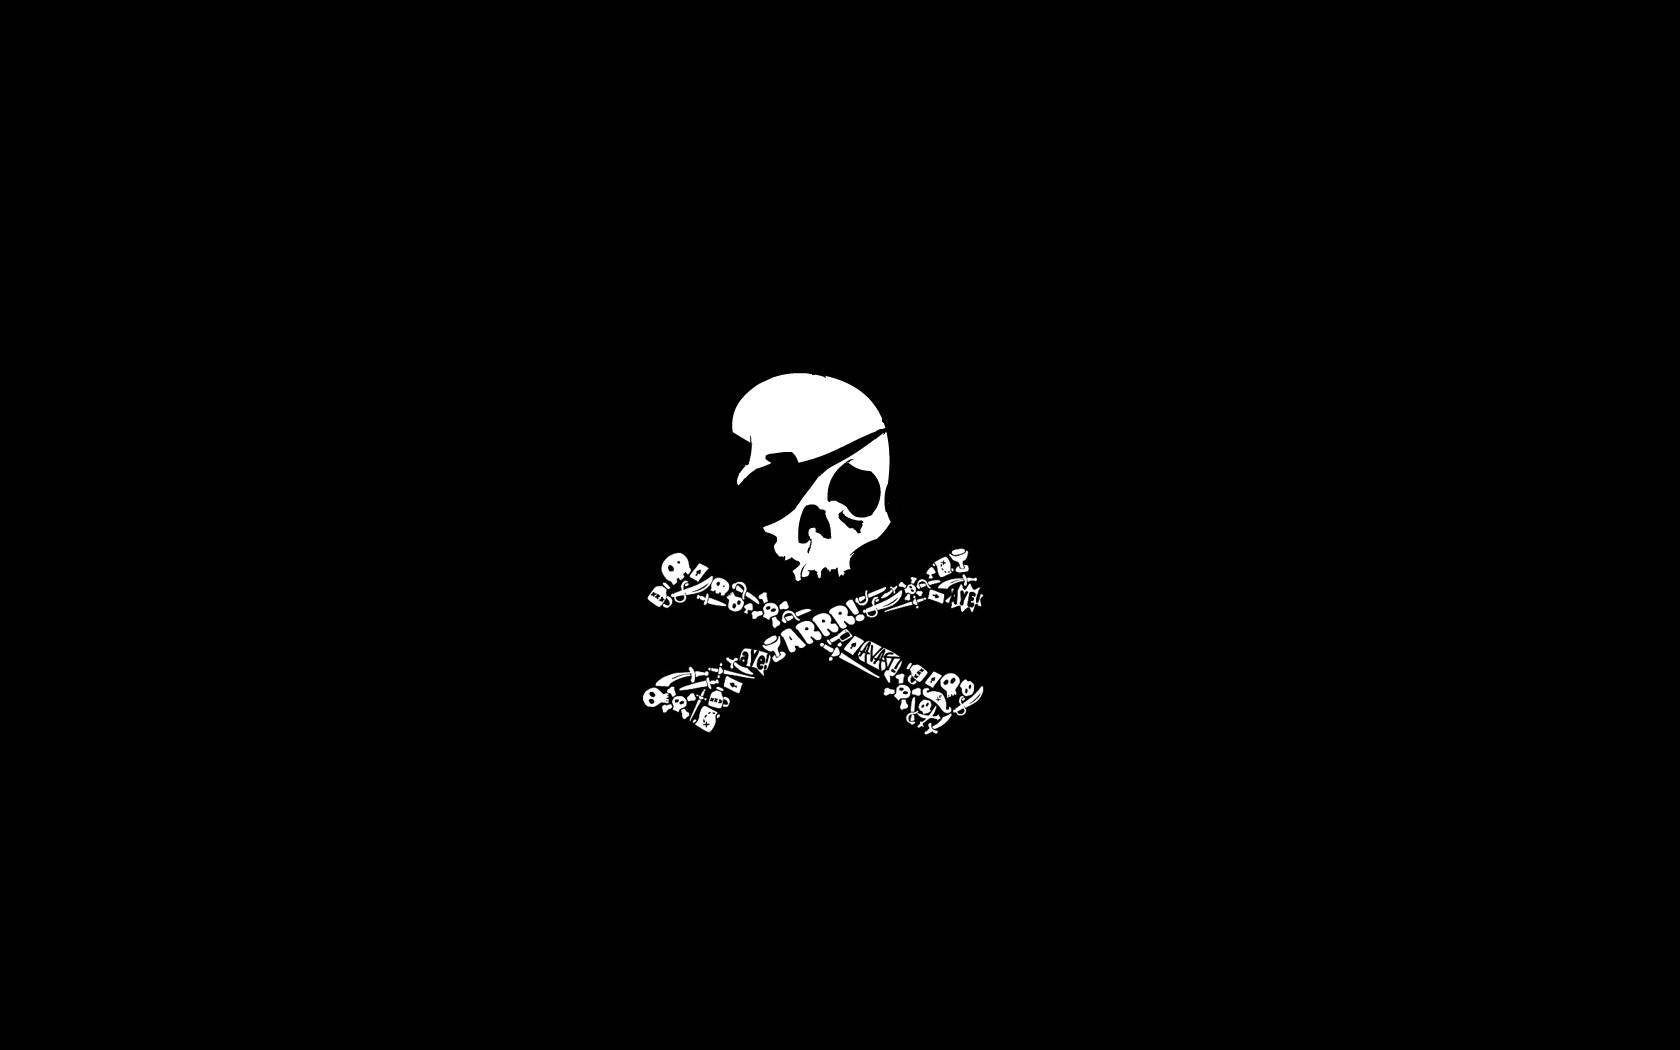 pirate jolly roger flags 1680x1050